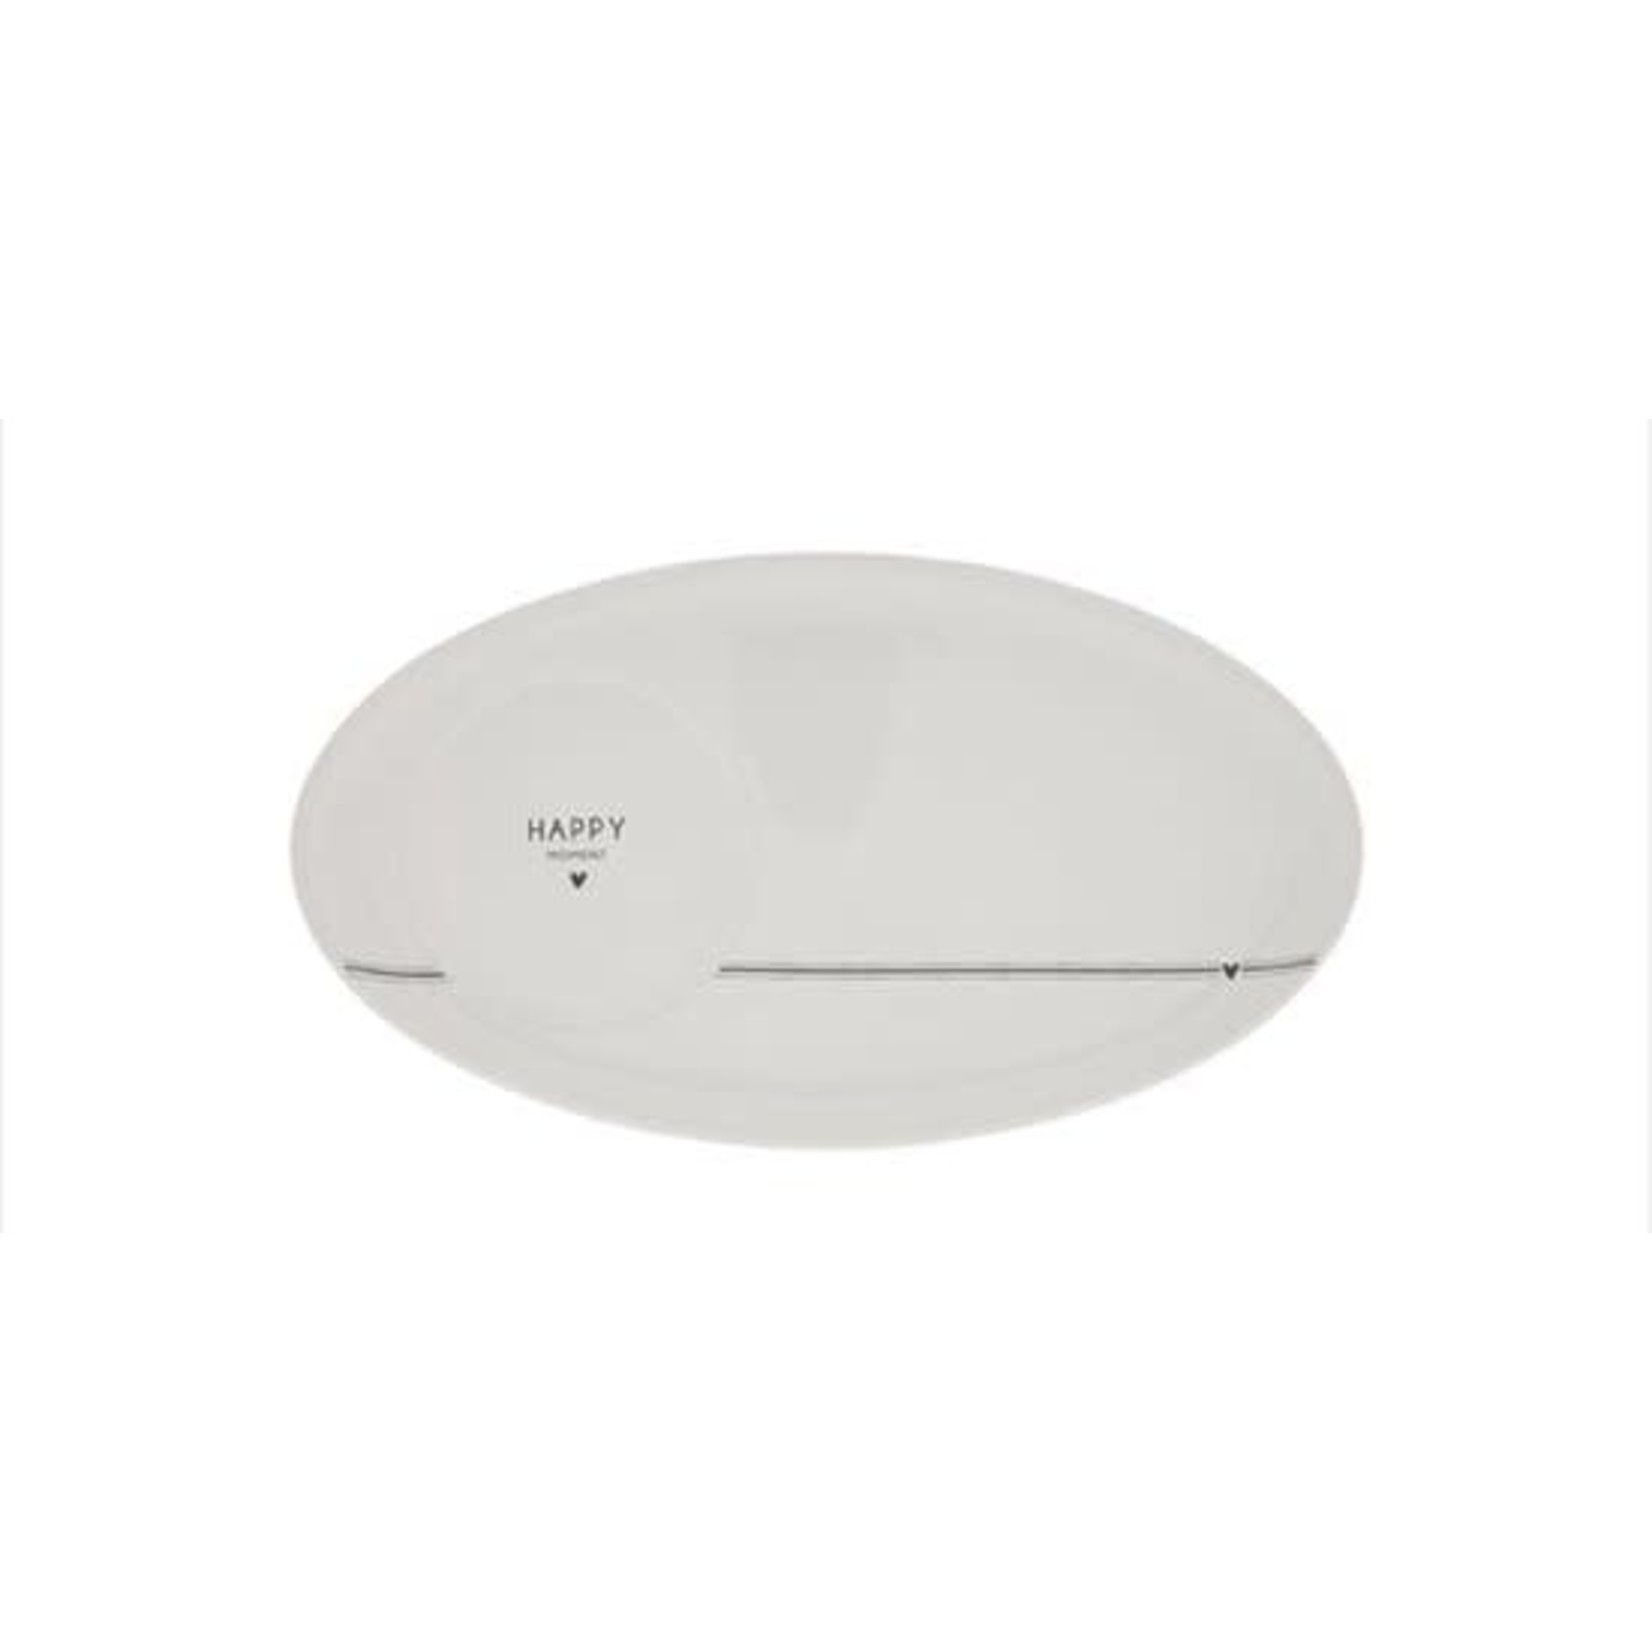 Bastion Collections Oval Plate White Happy Moment in Black